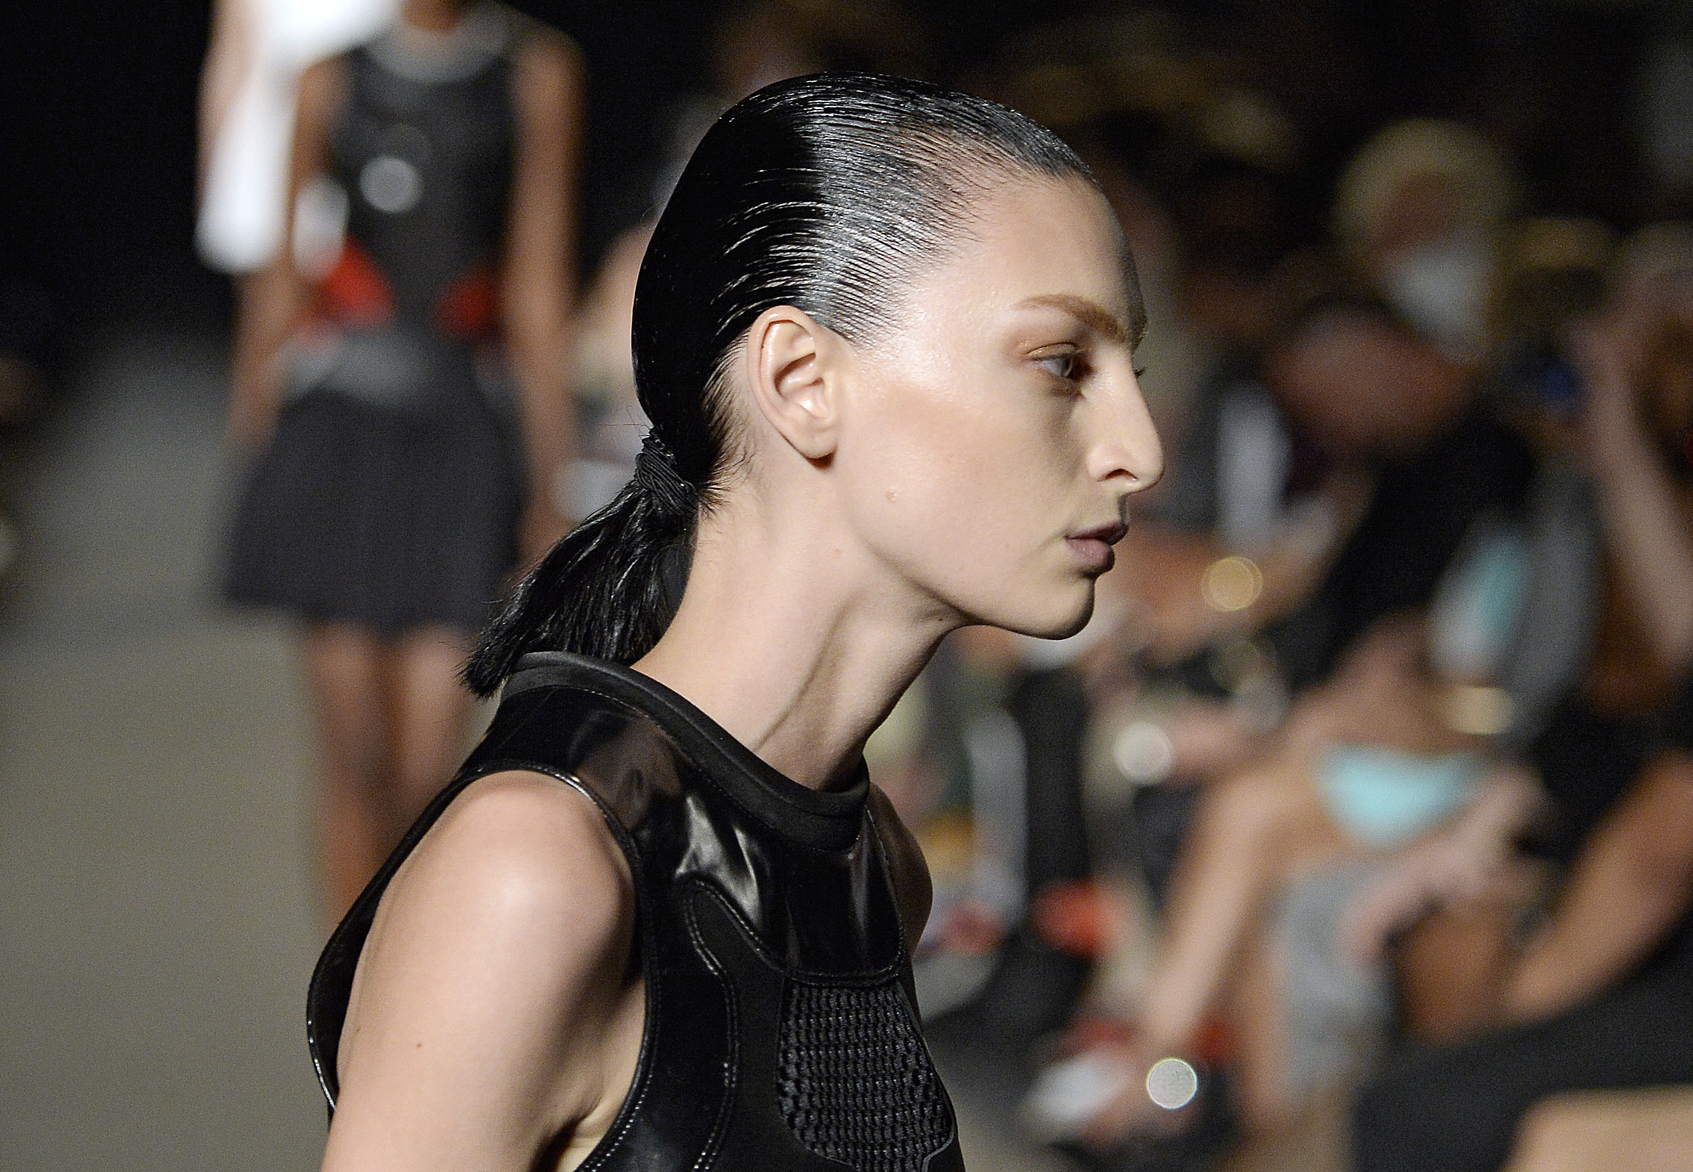 Slicked Back Hairstyles 2015 Spring/ Summer Trends